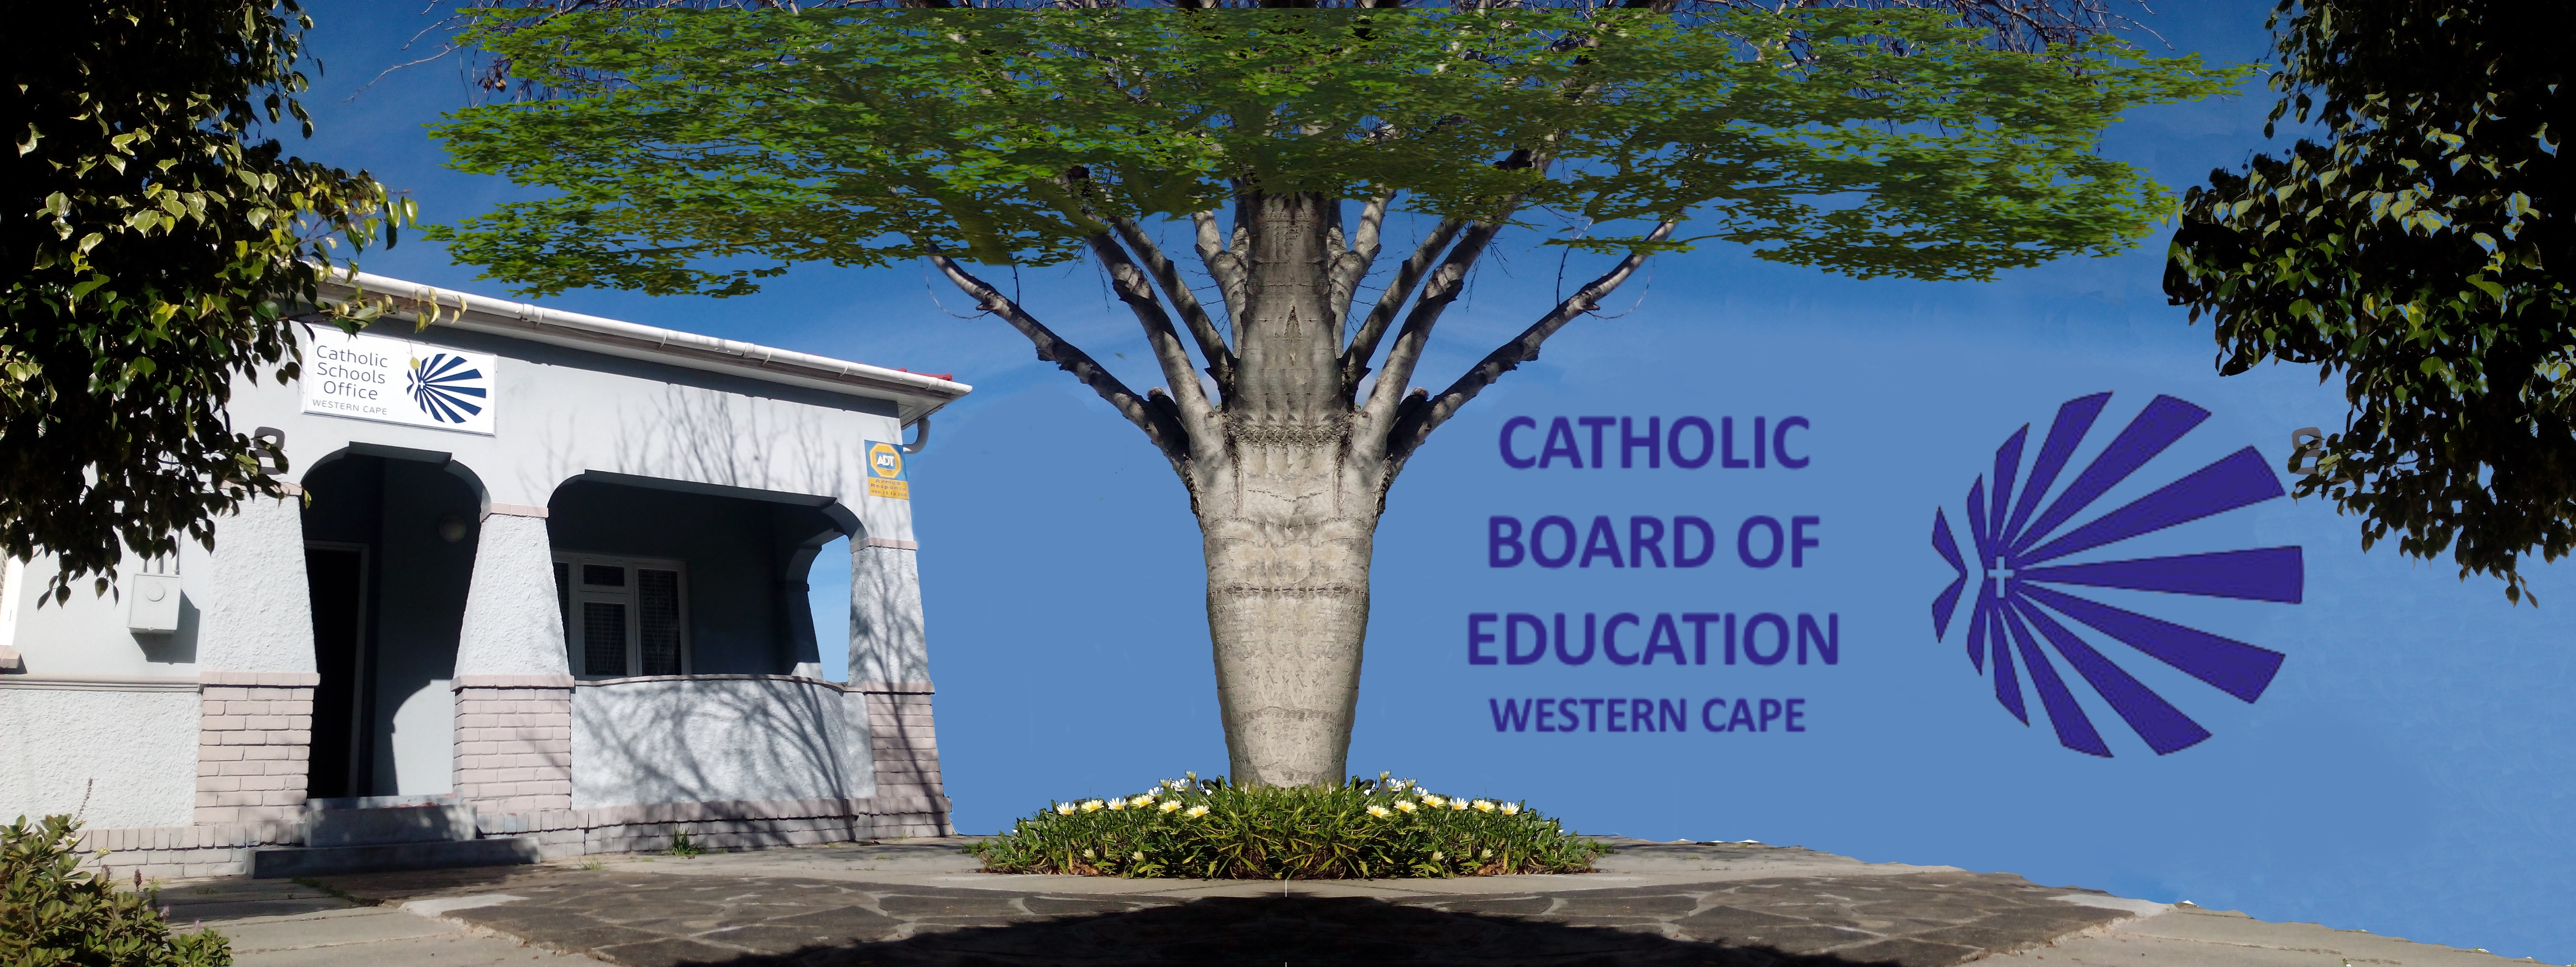 Catholic Board of Education